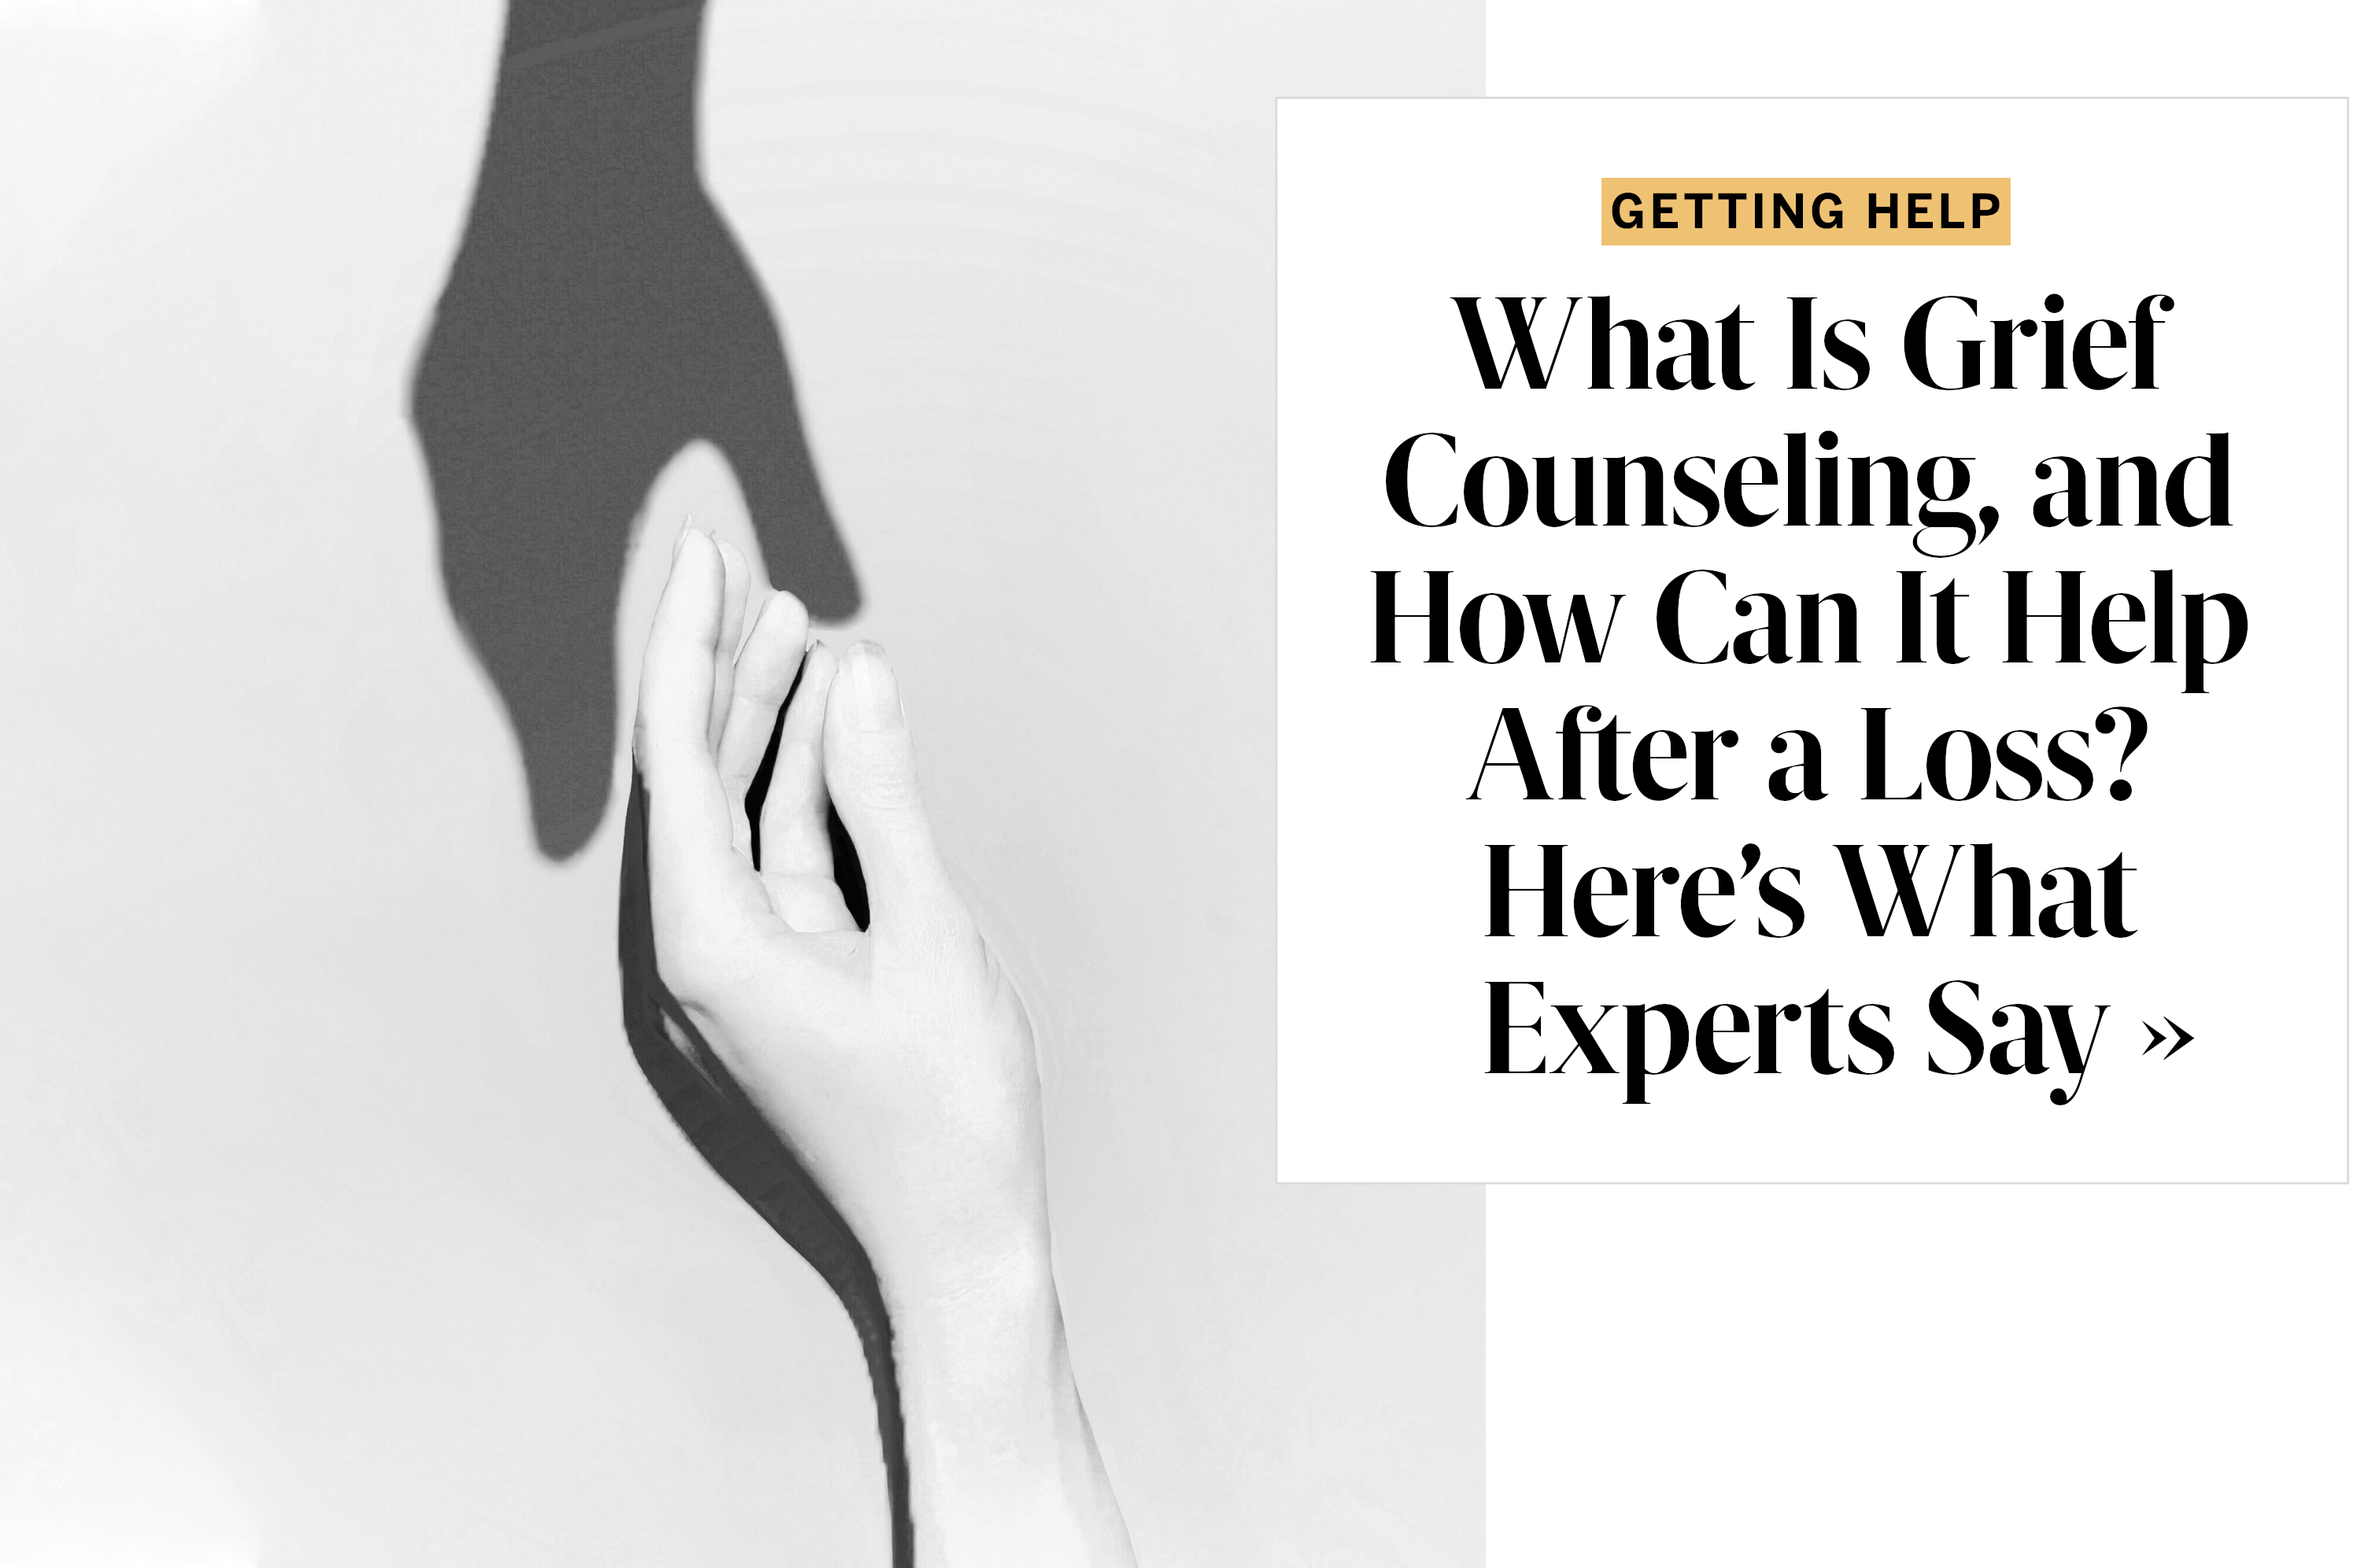 What Is Grief Counseling, and How Can It Help After a Loss? Here's What Experts Say